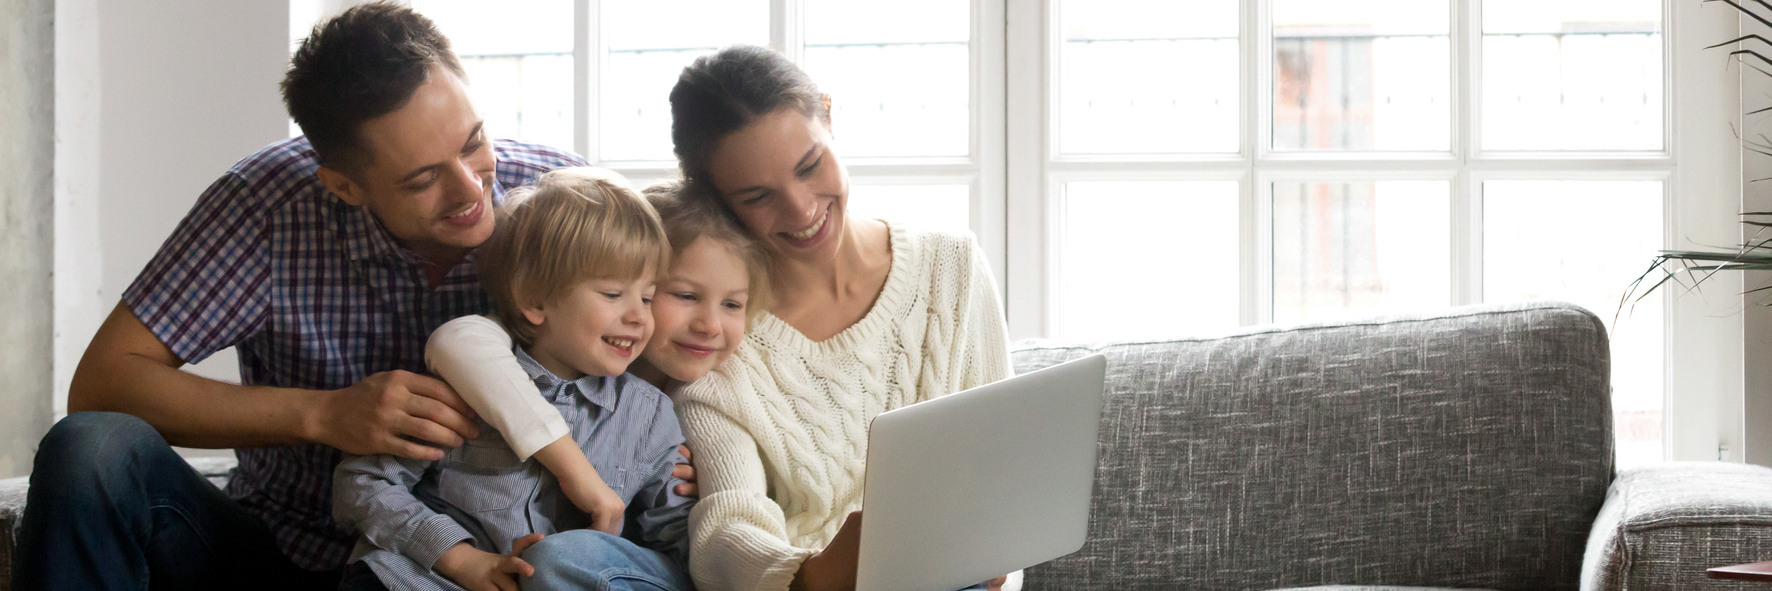 Family with two small children, smiling while gathered around a laptop.